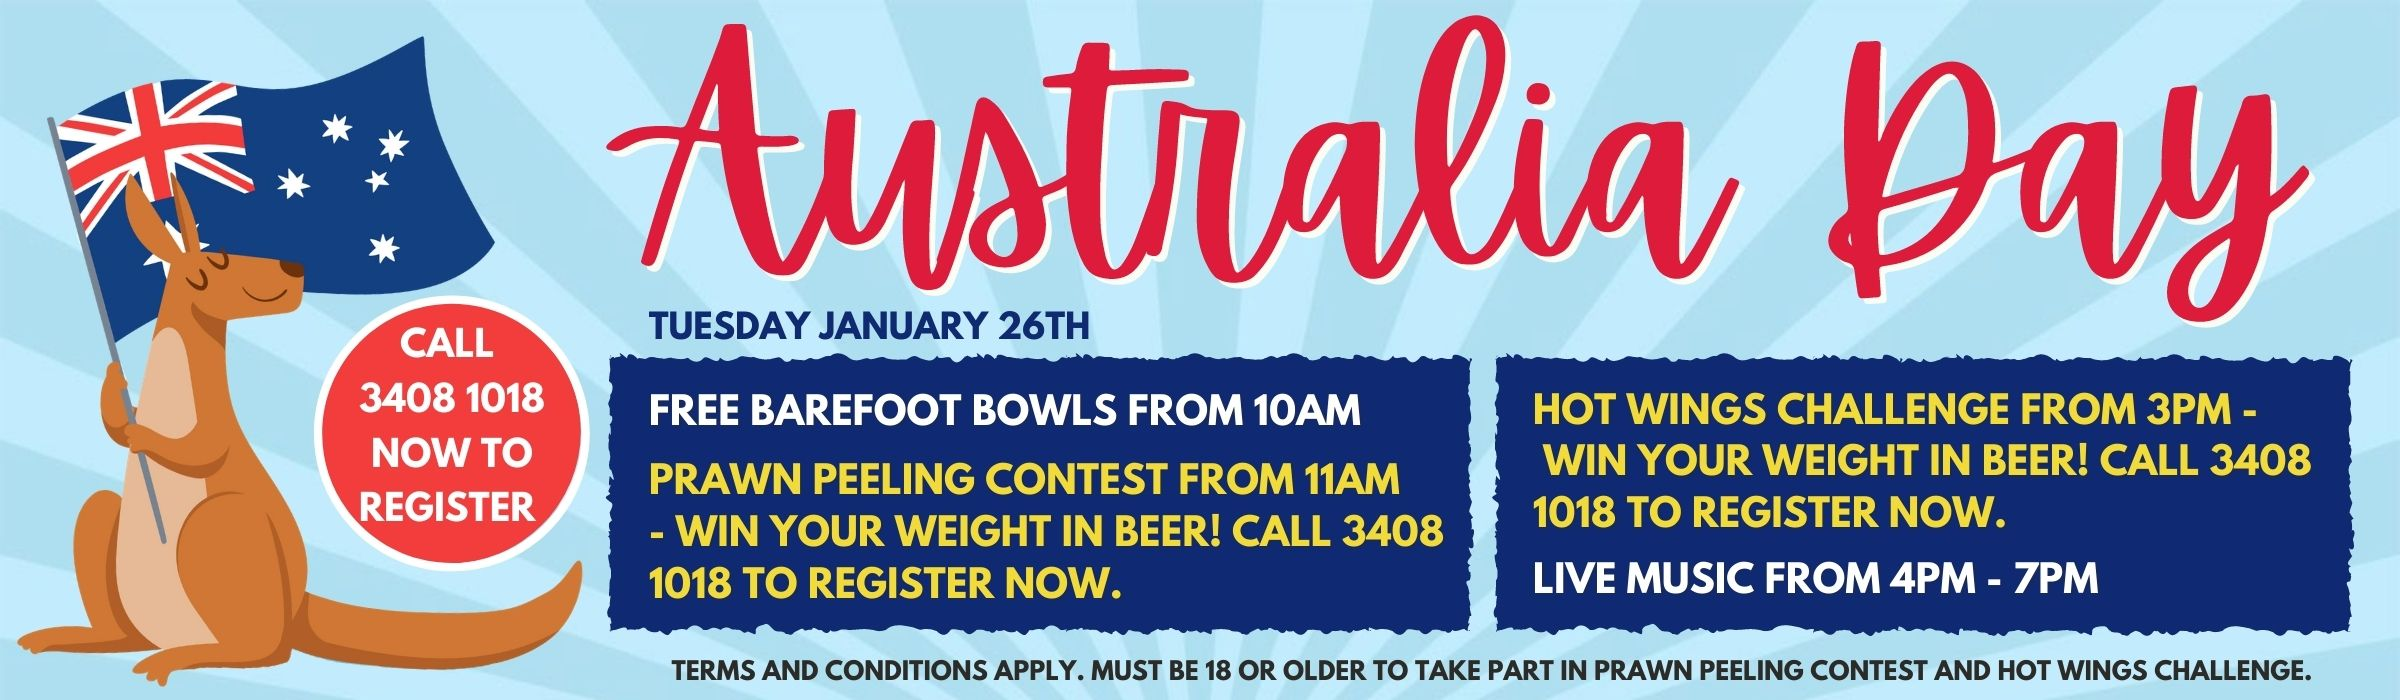 Australia Day at the Bowlo